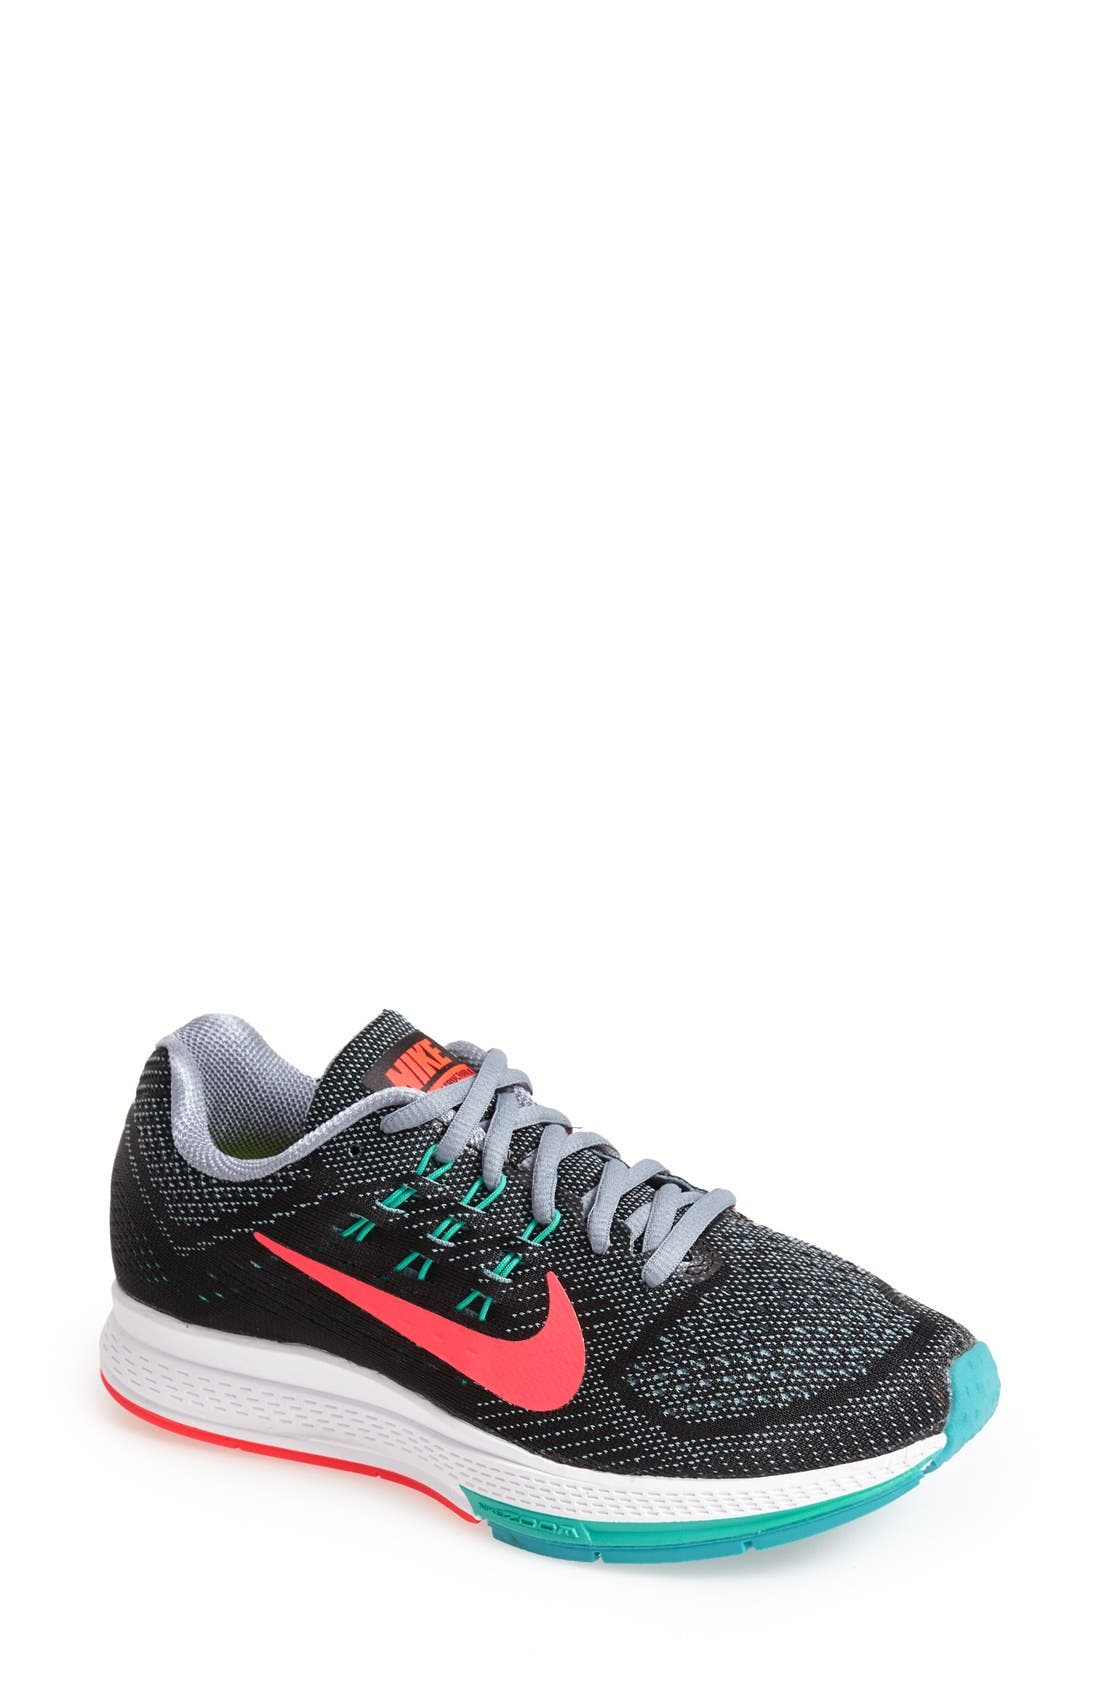 NIKE 'Air Zoom Structure 18' Running Shoe, Main, color, 001